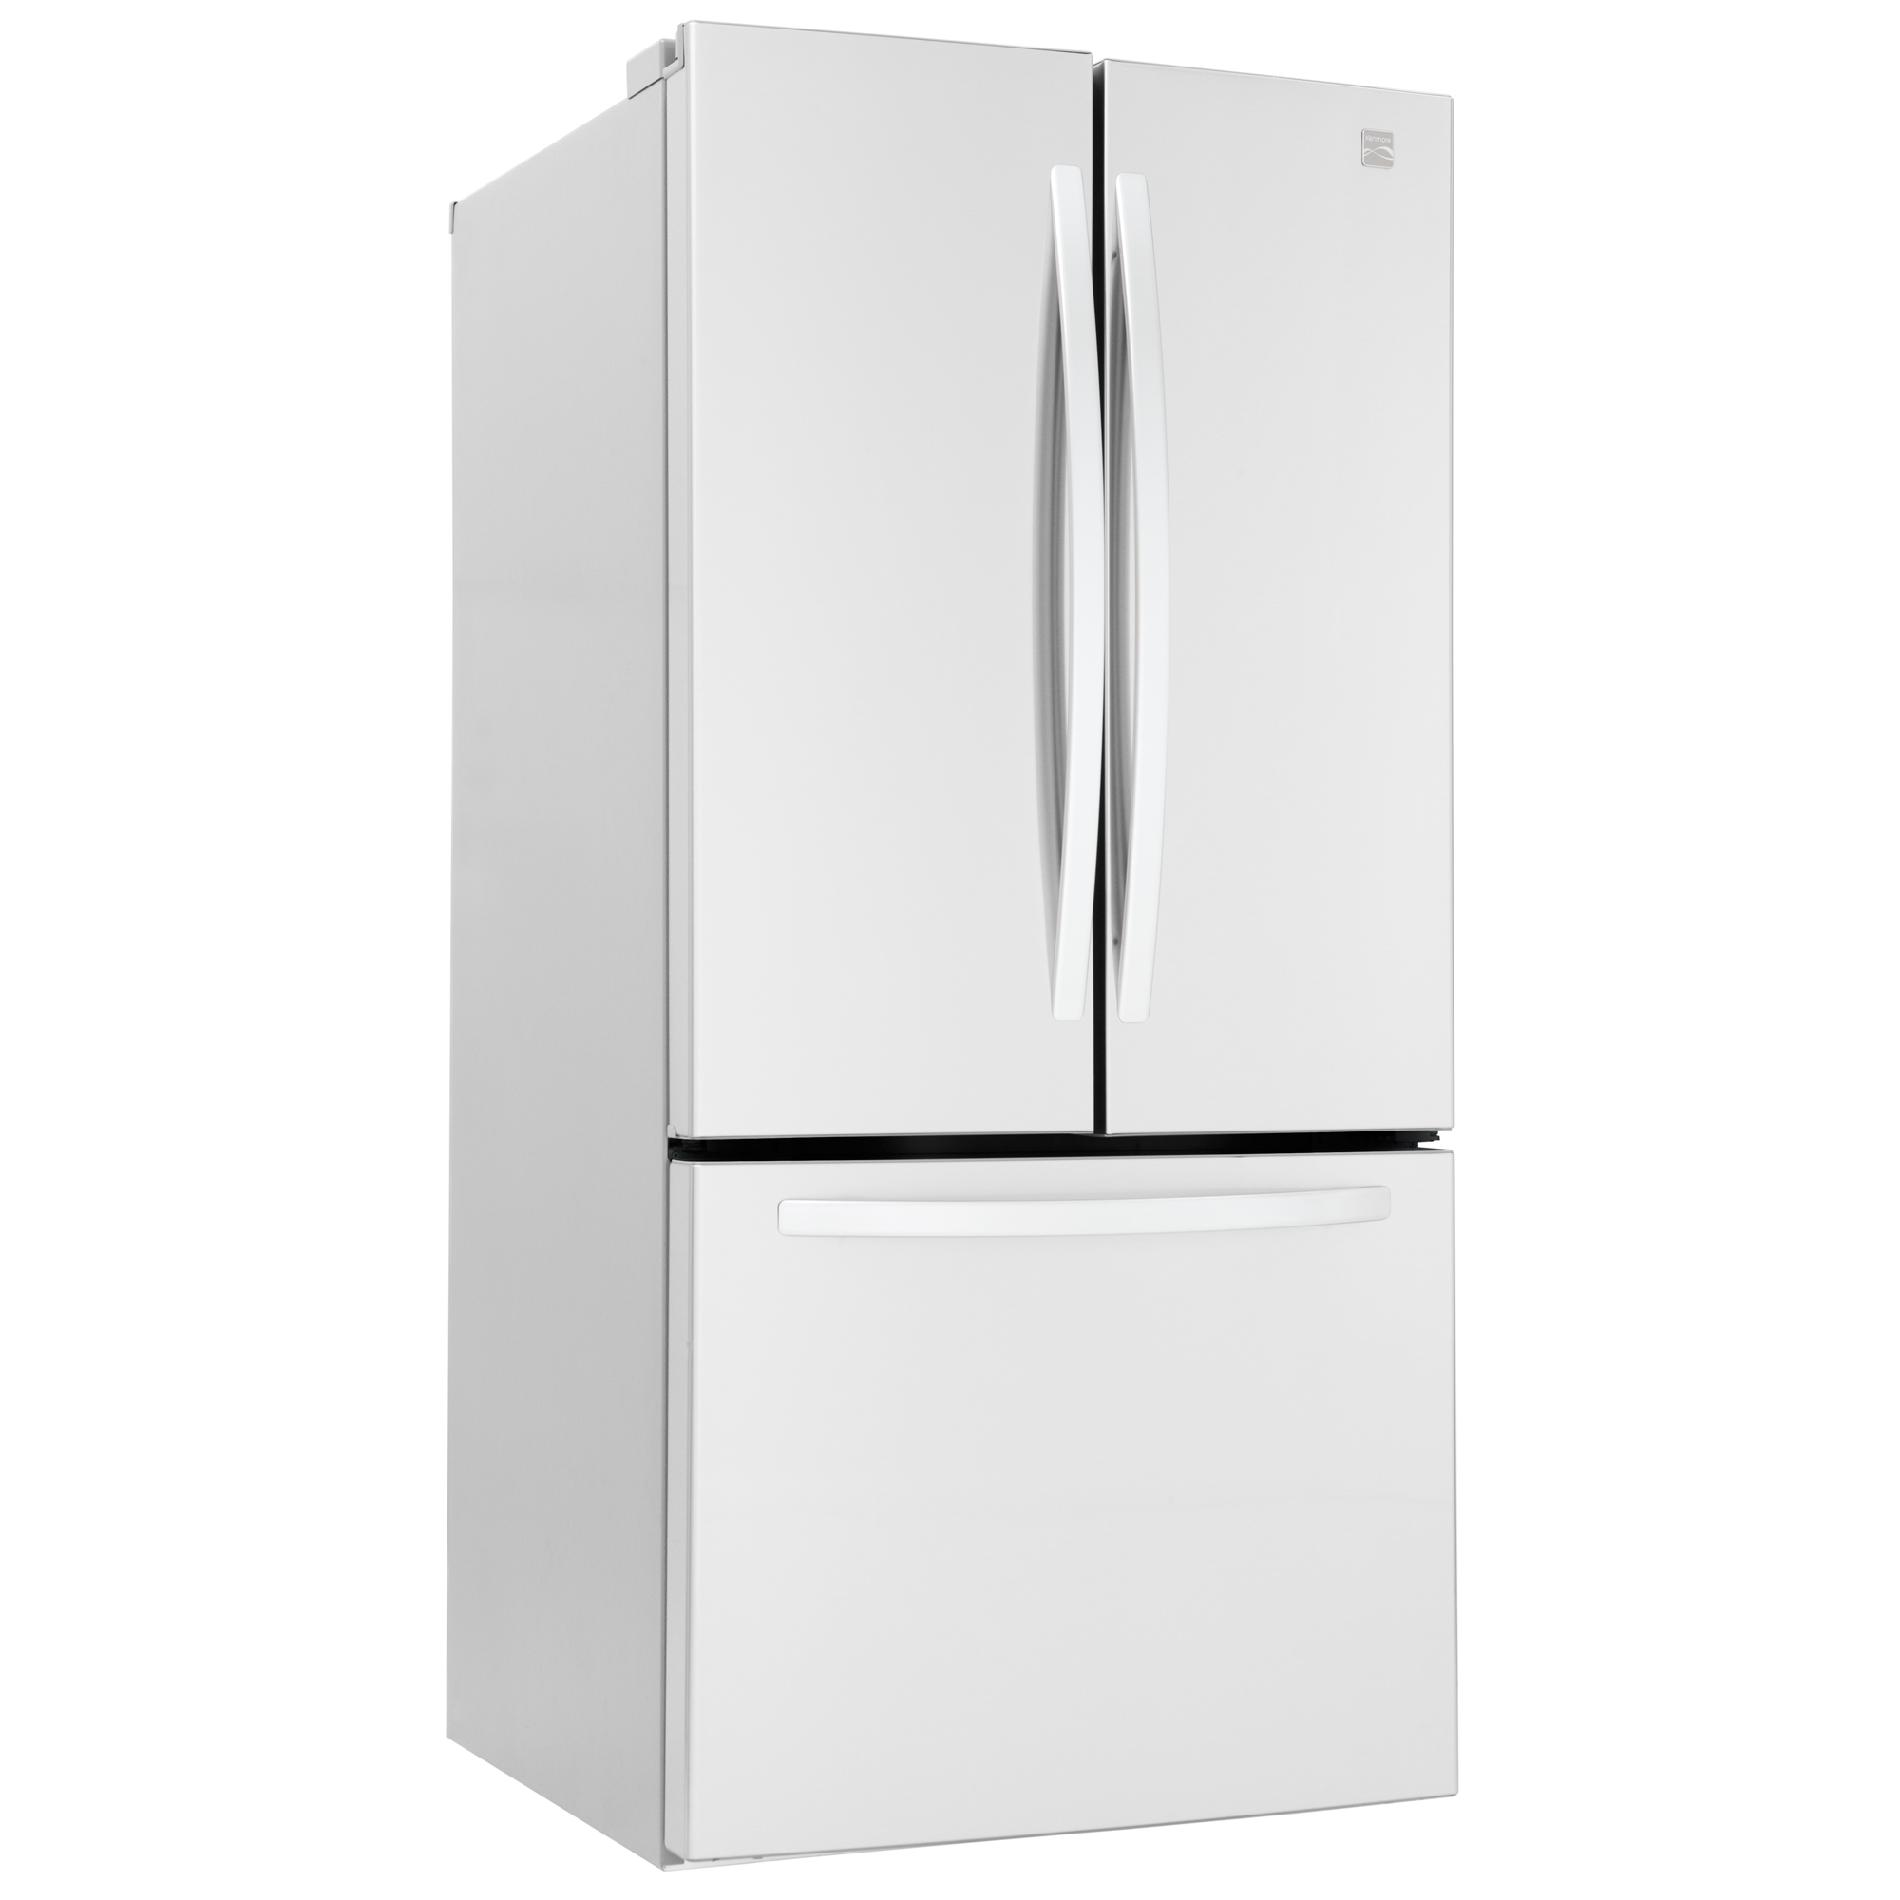 Kenmore 23.6 cu. ft.  French Door Bottom-Freezer Refrigerator - White